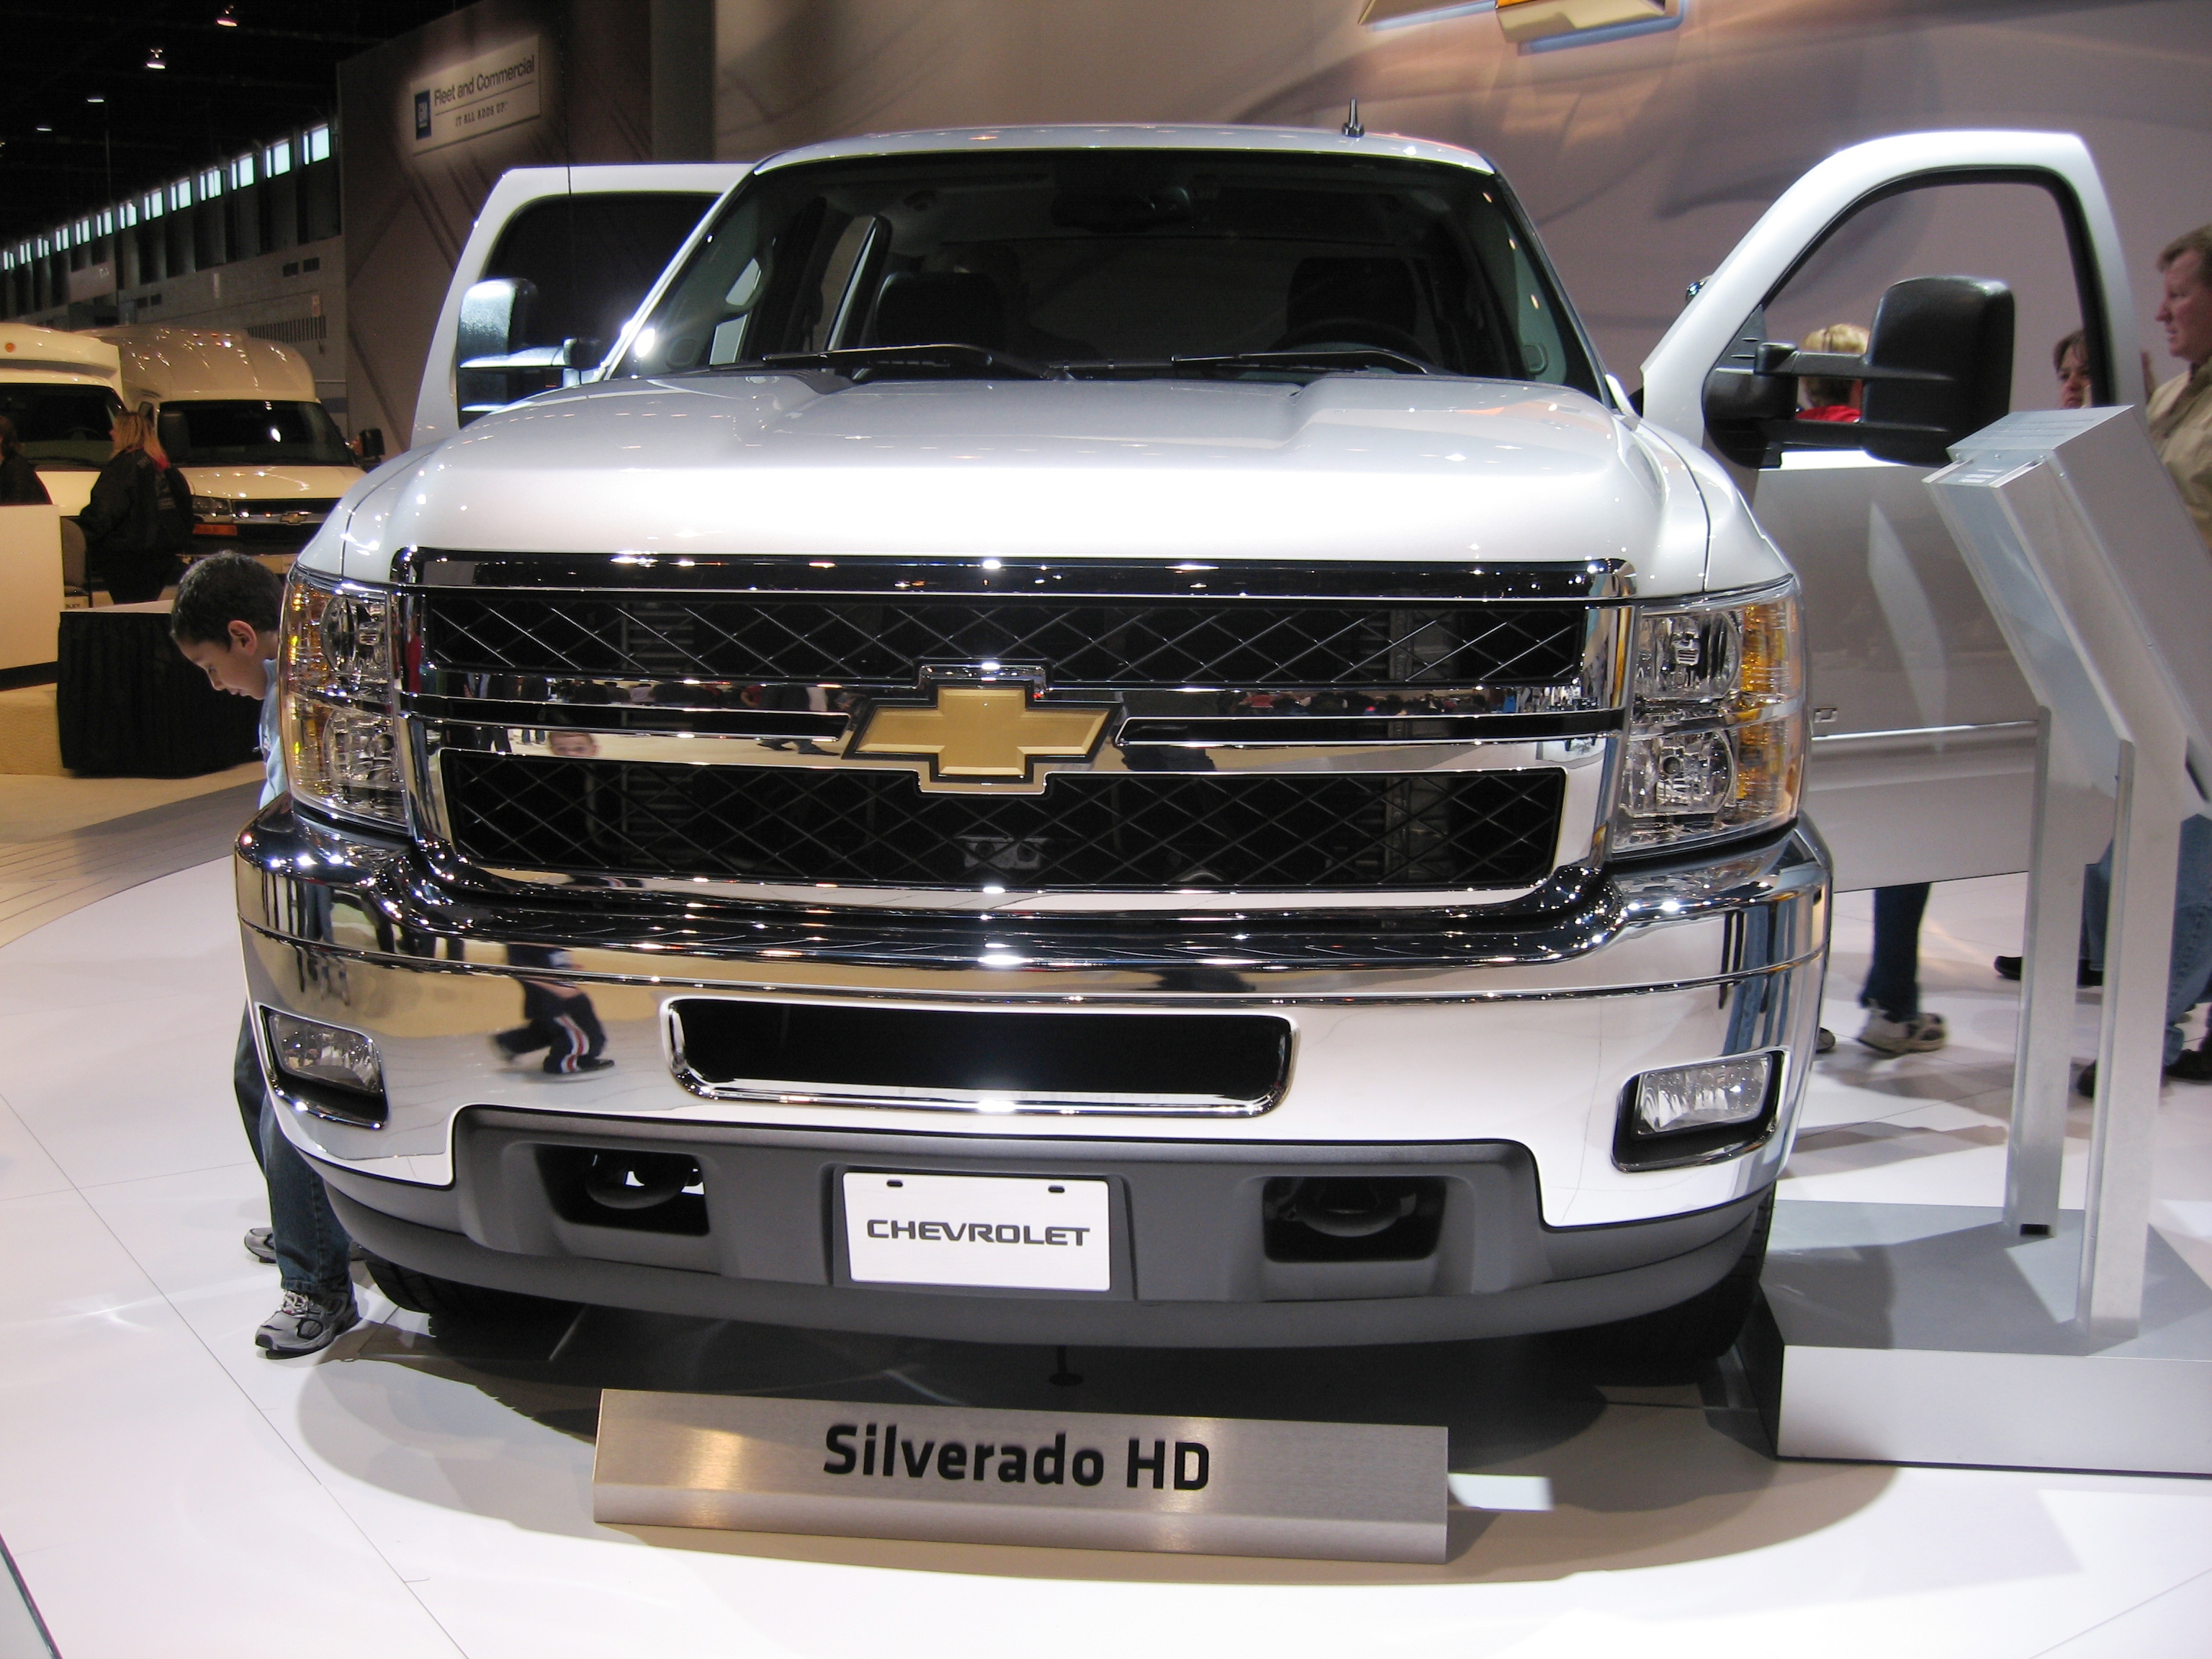 Chevrolet hd photo - 4